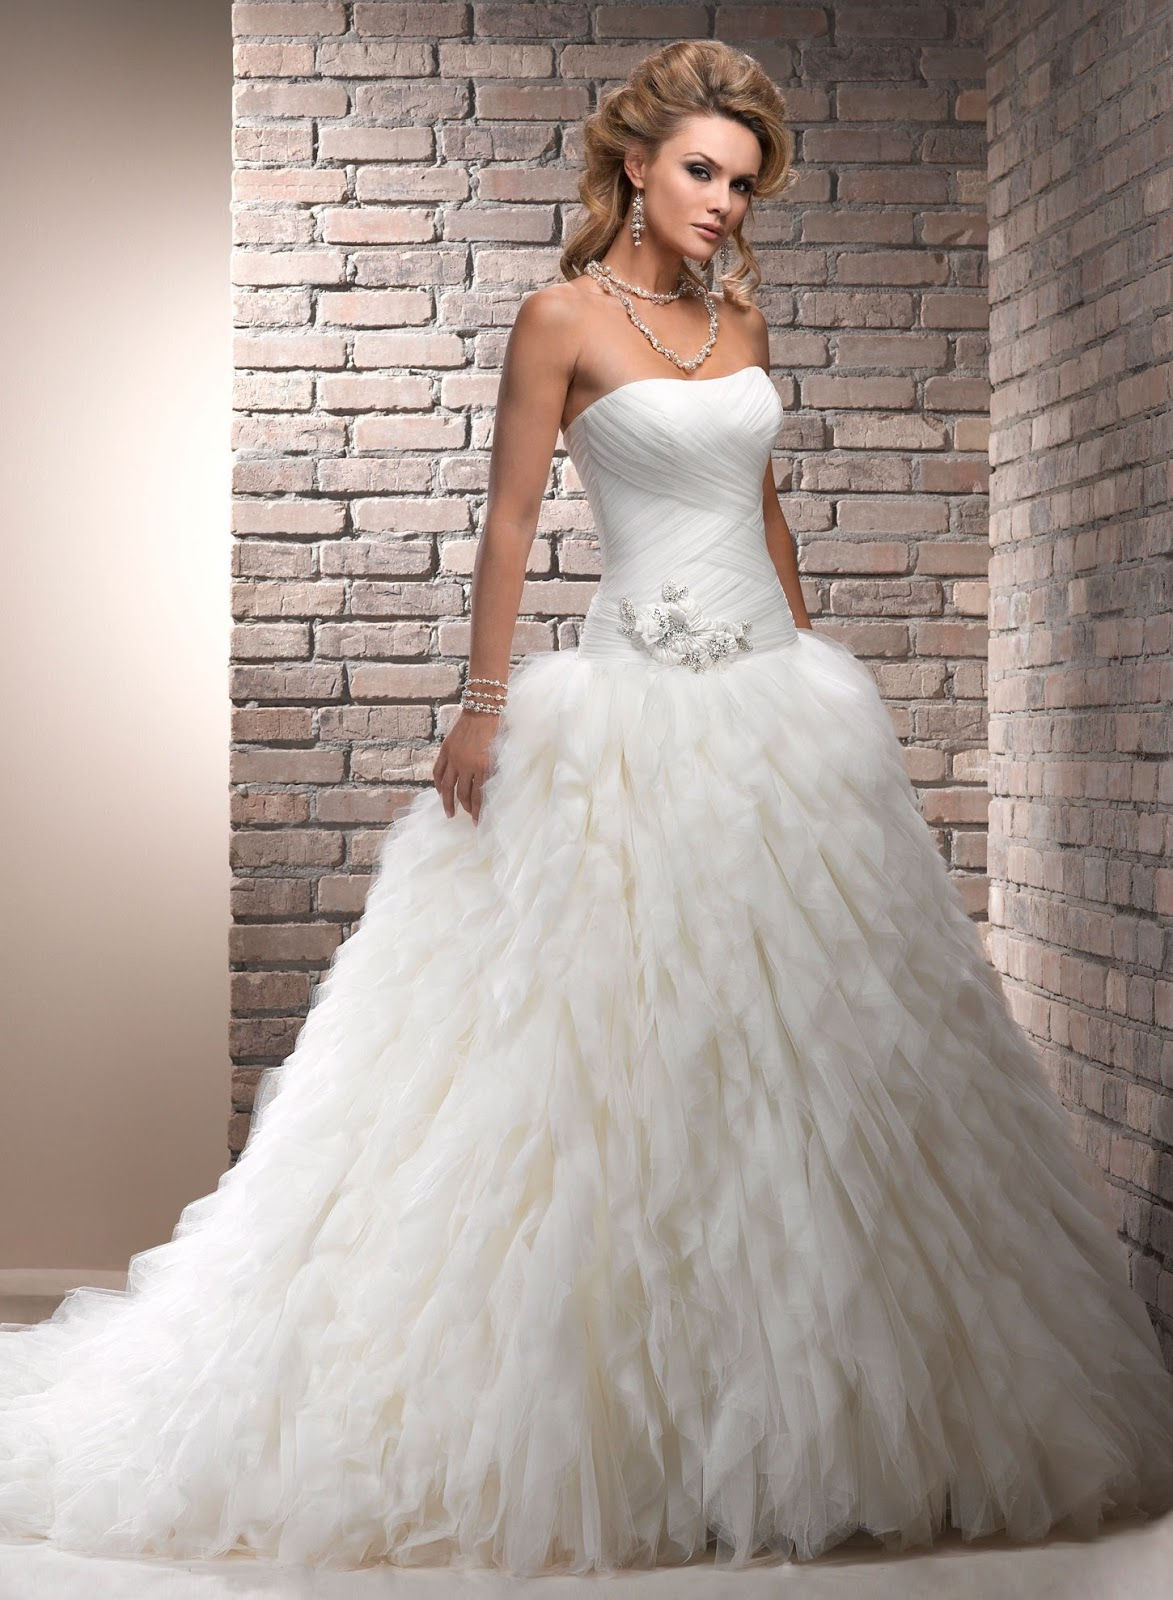 Maggie Sottero Wedding Dresses Cheap - Wedding Dresses In Redlands